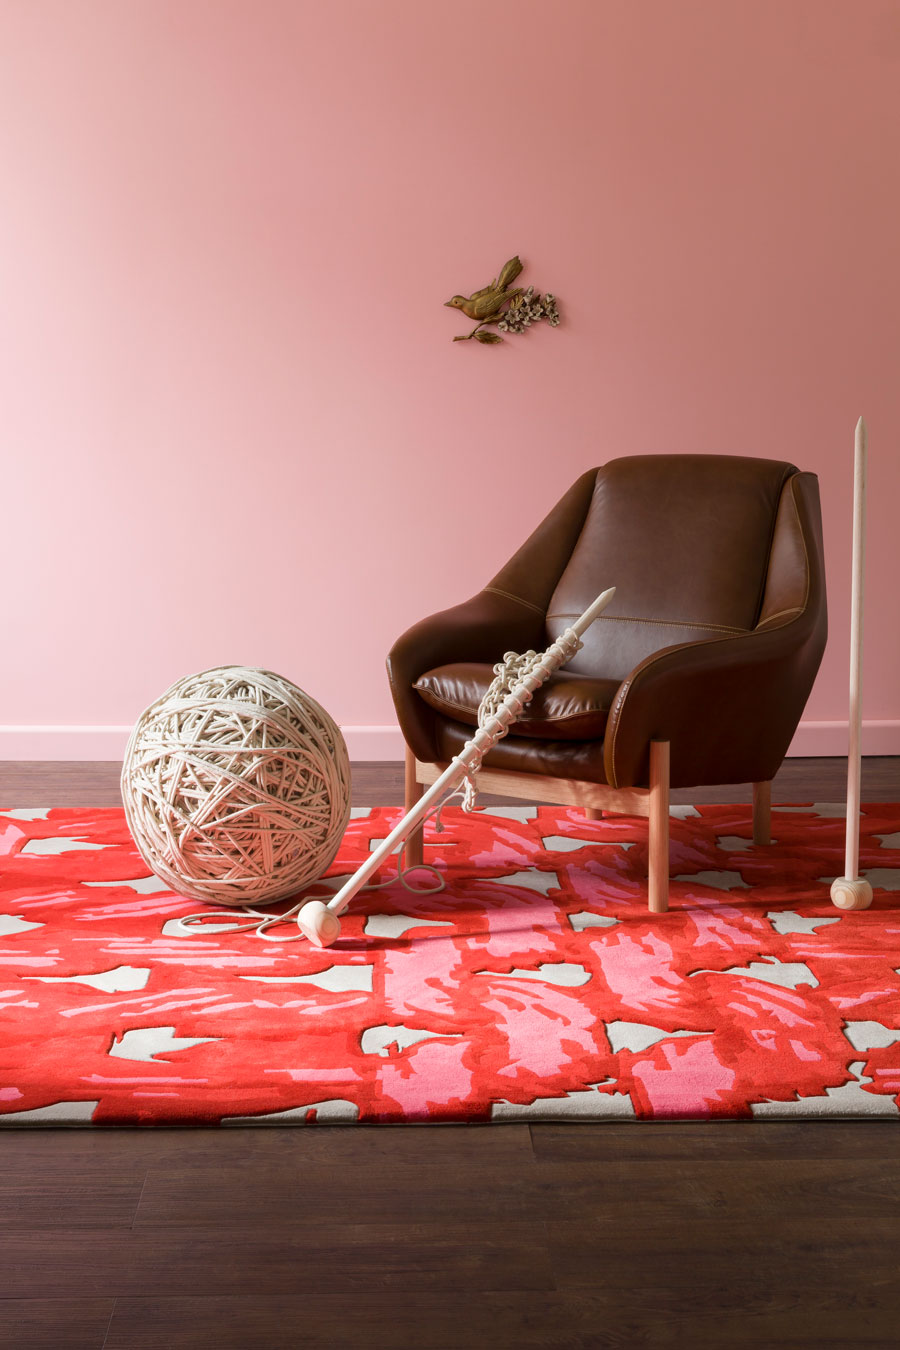 Living room image of Purls of Wisdom rug in red colour